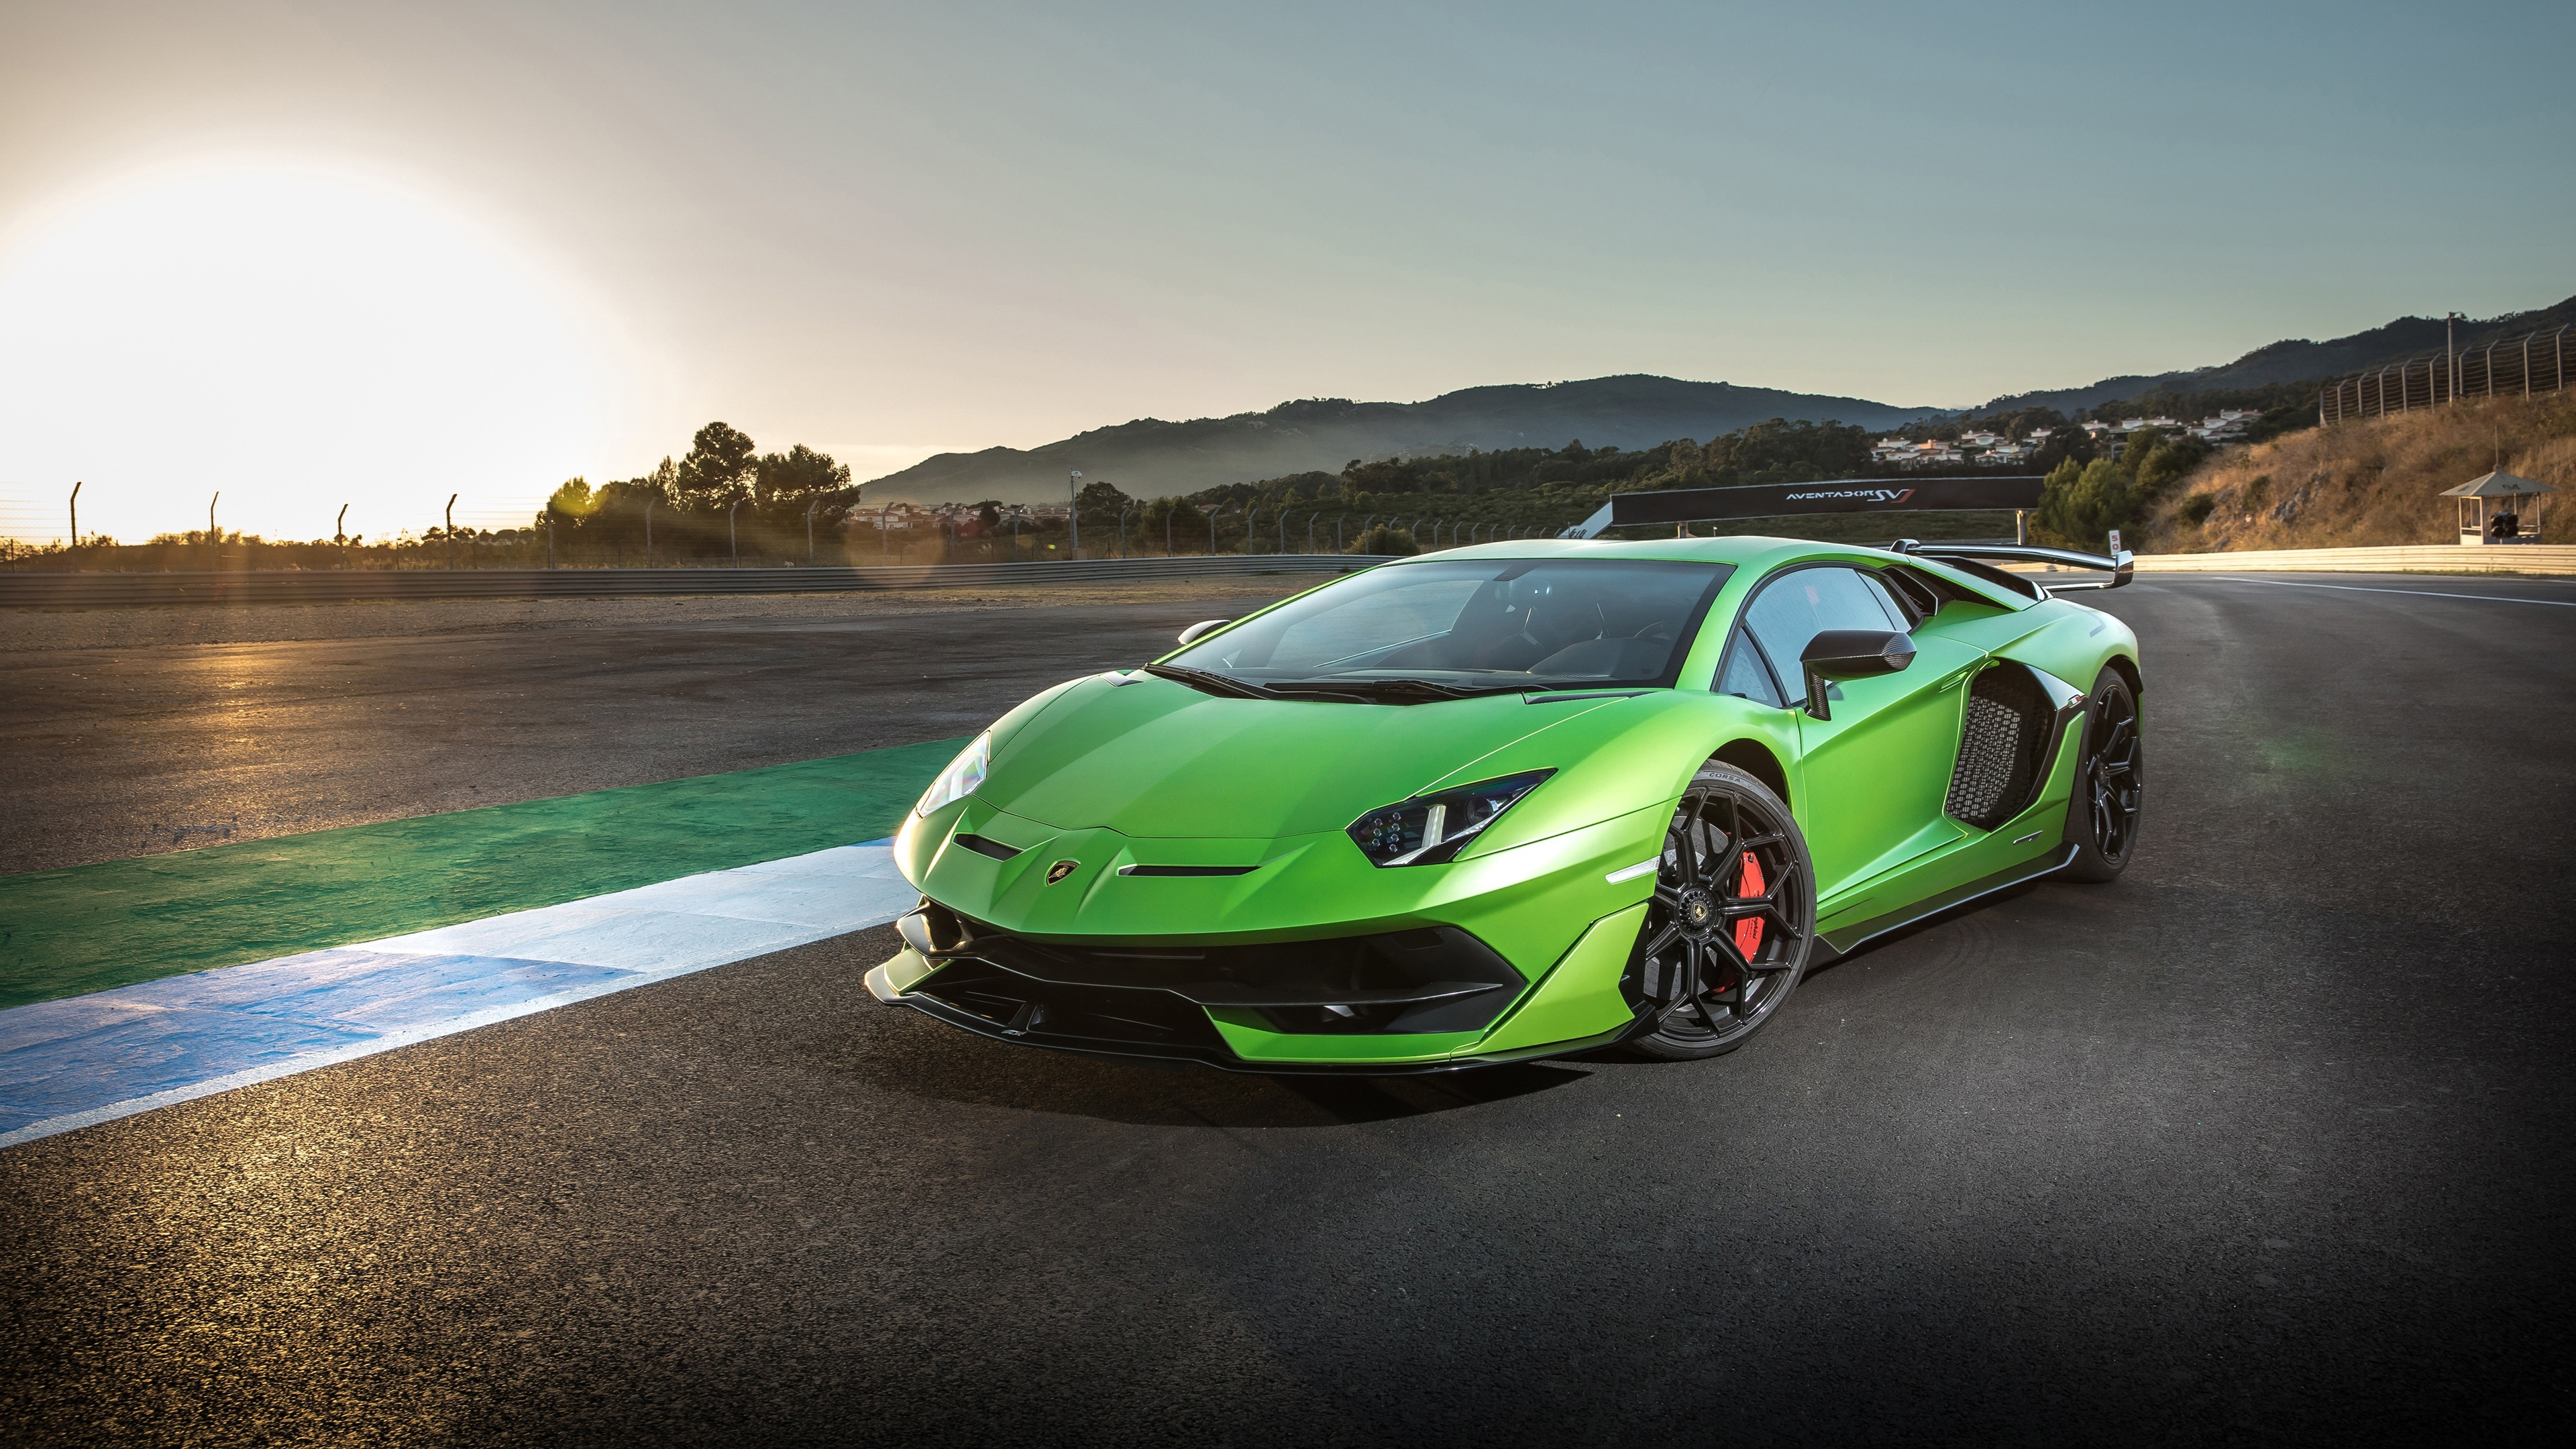 2018 lamborghini aventador svj new 4k 1546361652 - 2018 Lamborghini Aventador SVJ New 4k - lamborghini wallpapers, lamborghini aventador wallpapers, lamborghini aventador svj wallpapers, hd-wallpapers, cars wallpapers, 4k-wallpapers, 2018 cars wallpapers